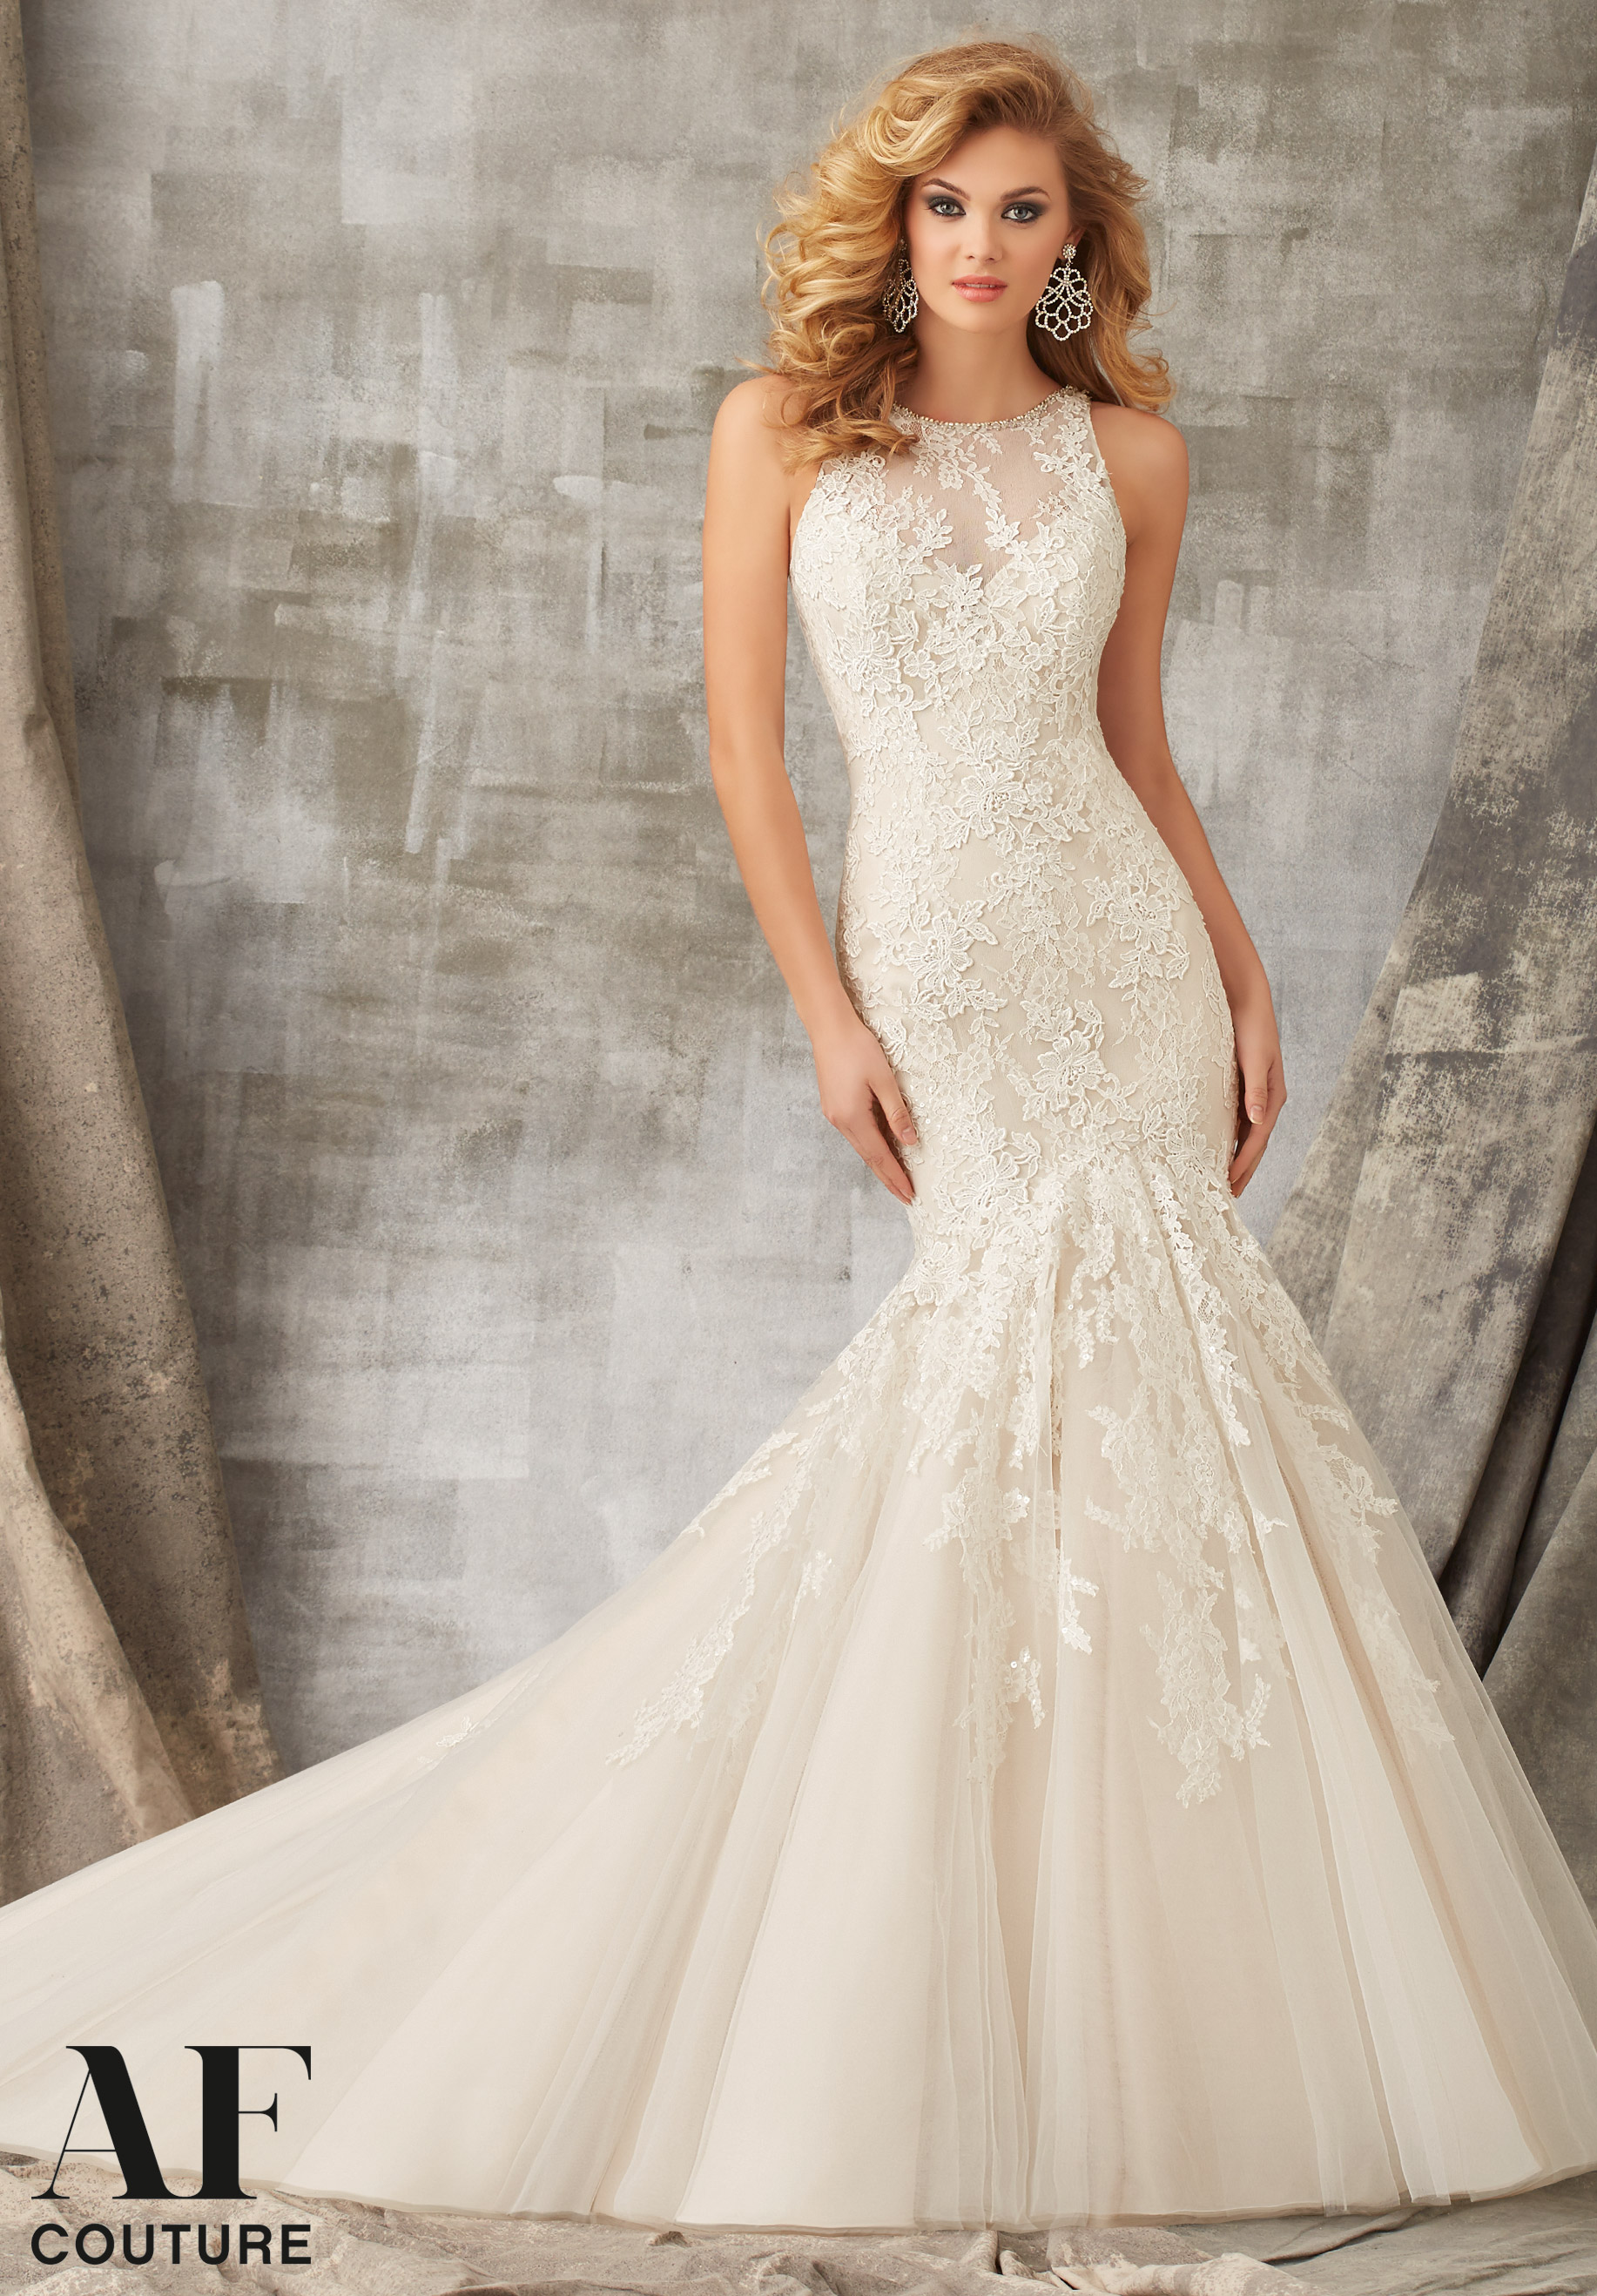 Mori Lee 1345 Ivory/Latte // Retail Price $1709 | Our Price $1195